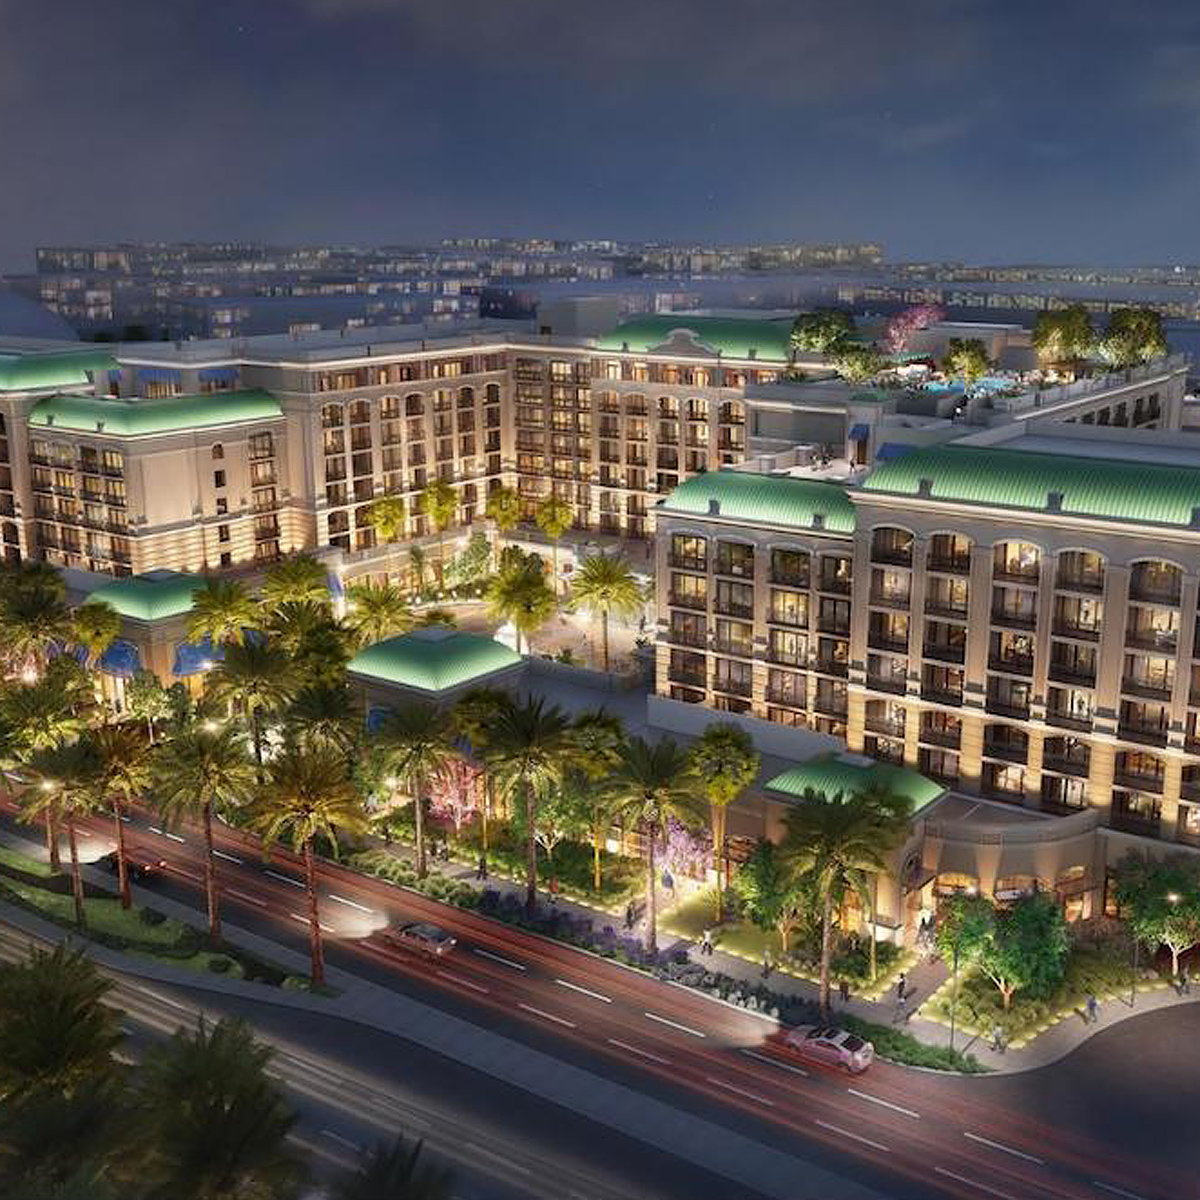 Lifescapes International to Design Landscaping for $245M Westin Anaheim Resort